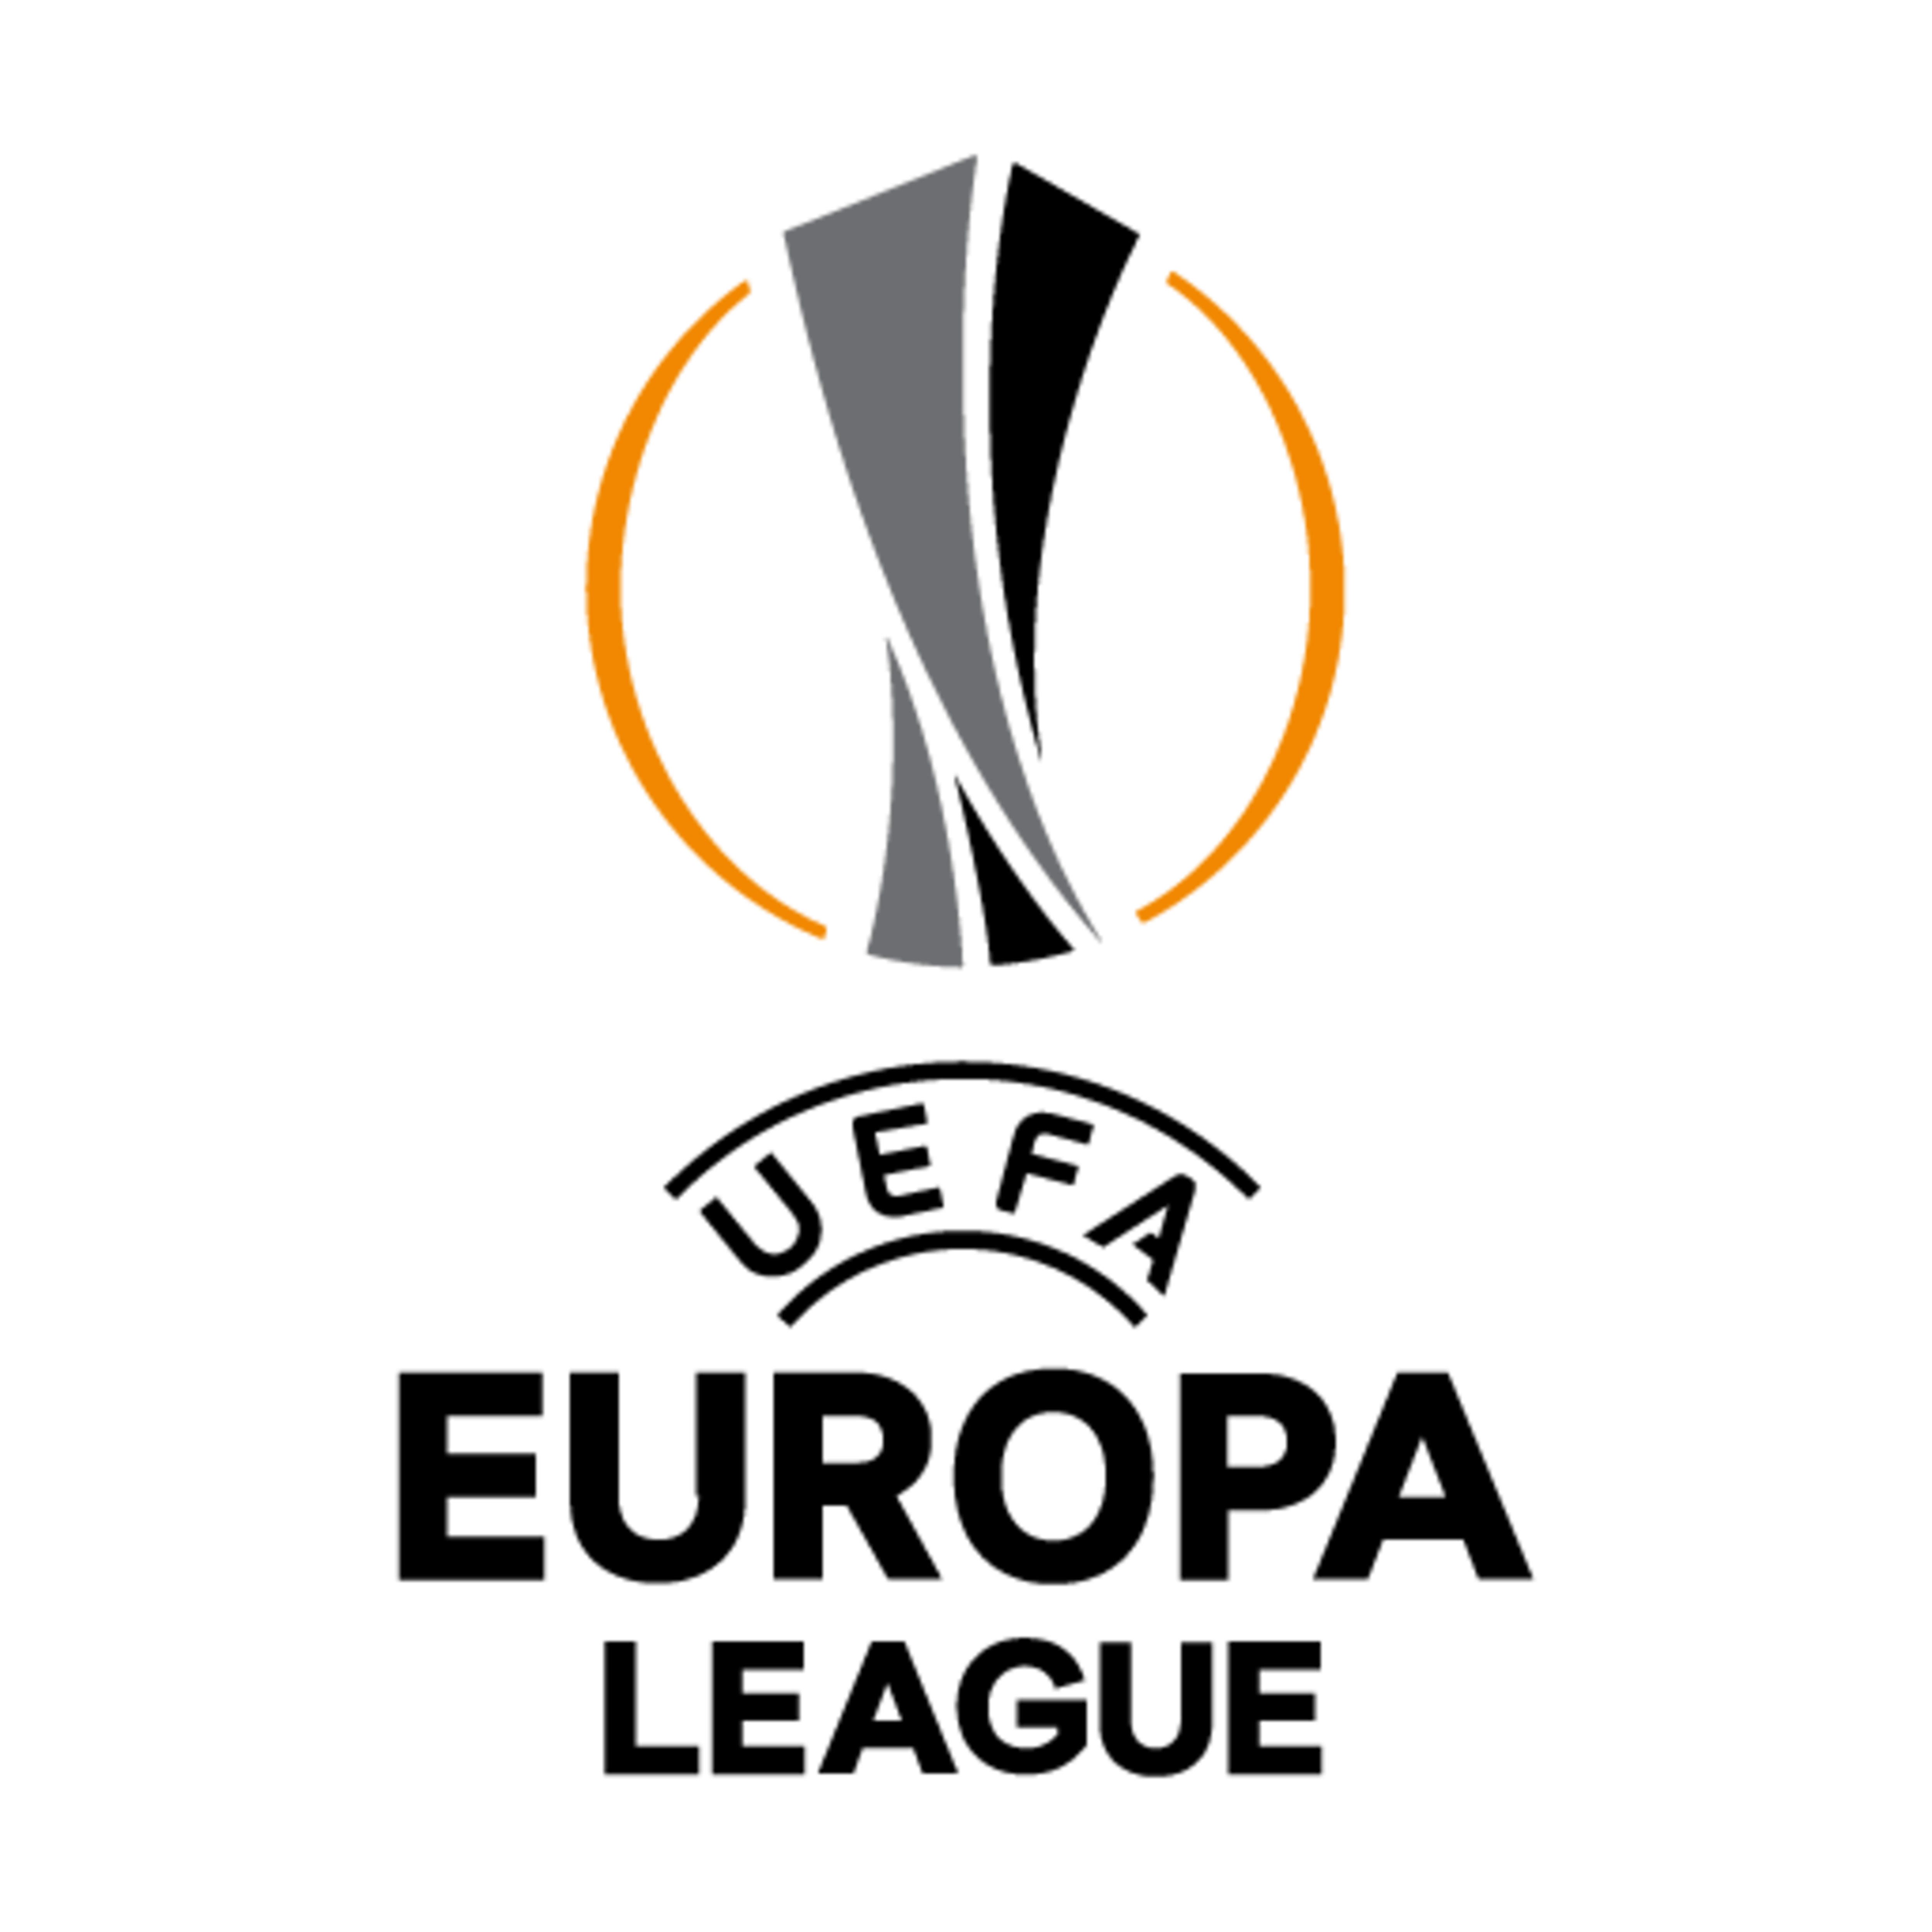 UEFA Logo - UEFA Europa League – Logos Download